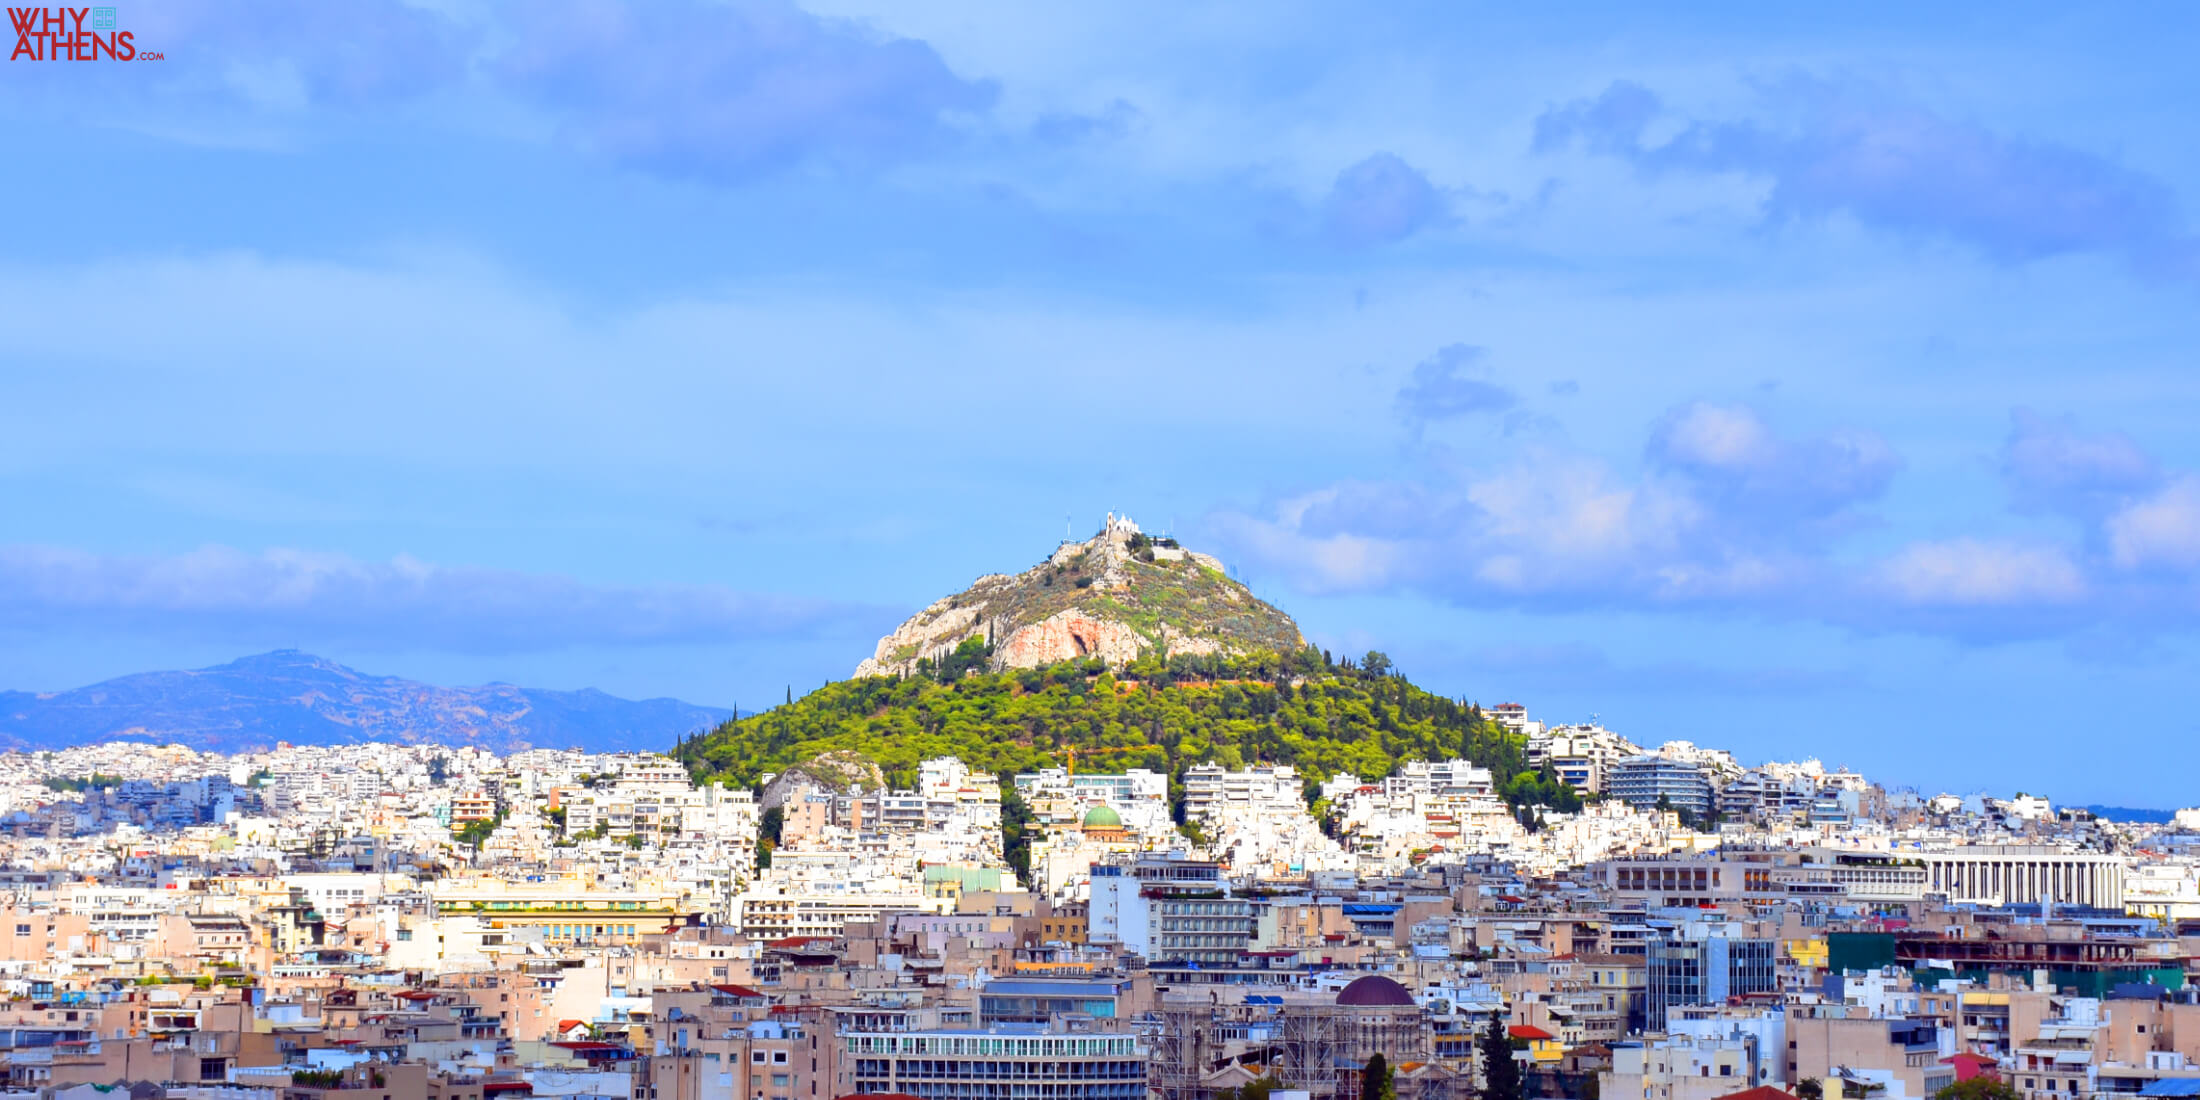 Lycabettus Hill - your guide to the top of Mt Lycabettus | Why Athens